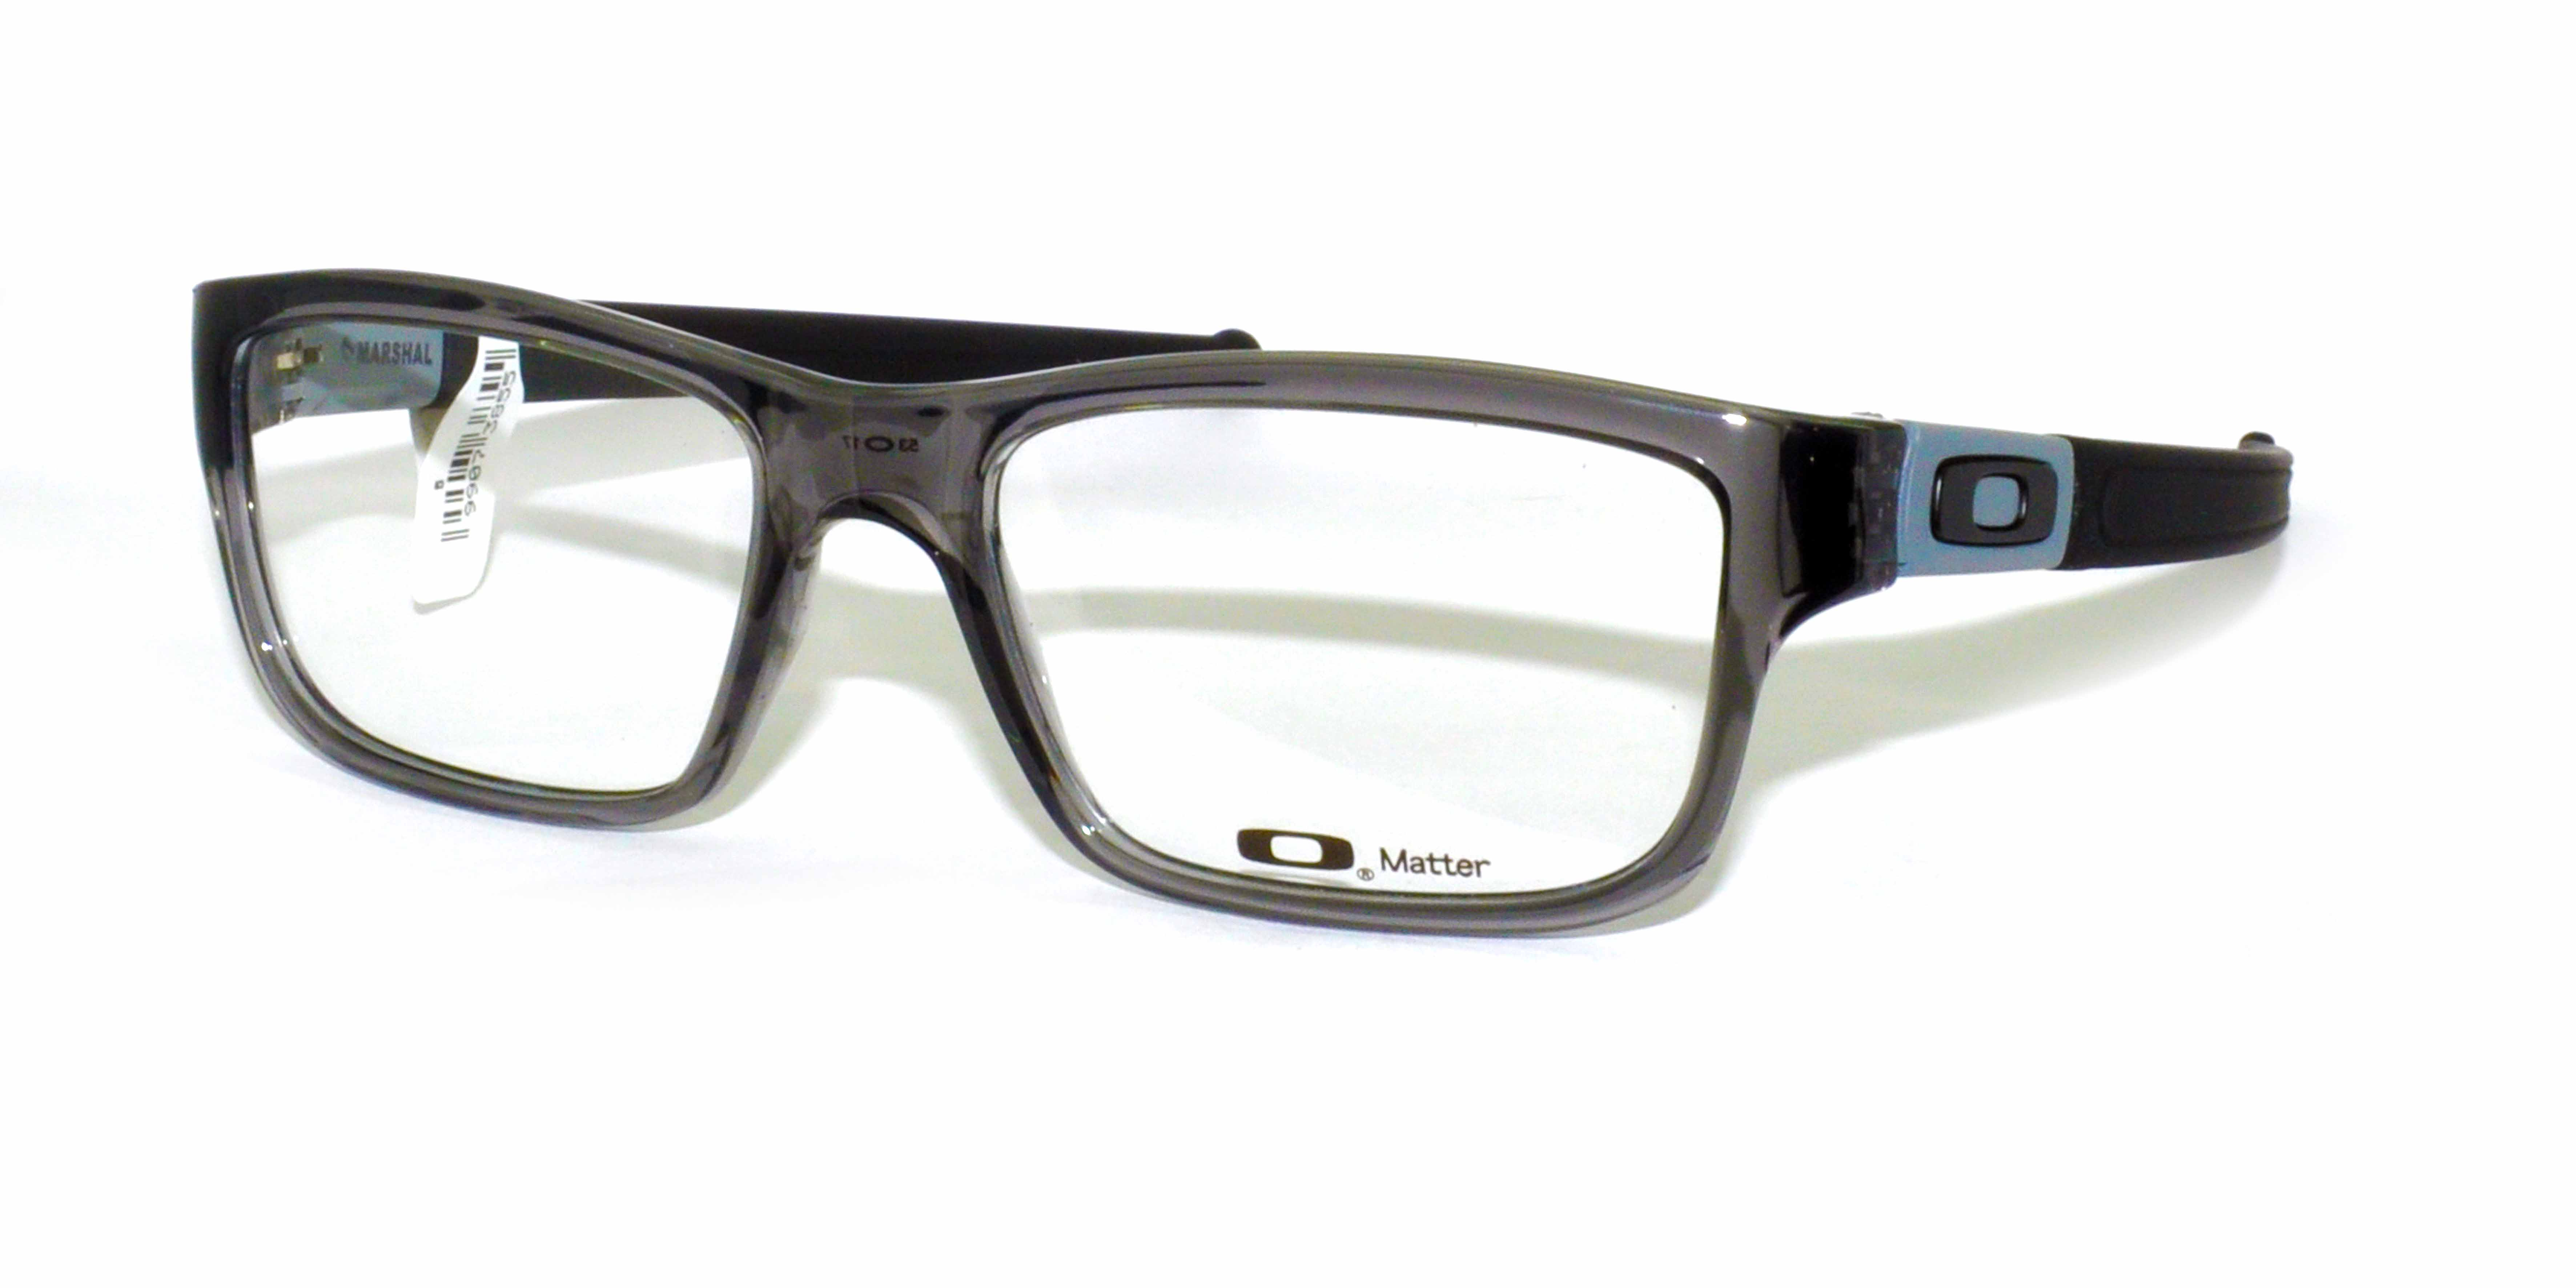 oakley model marshall 8034 colour code 06 frame colour grey smoke